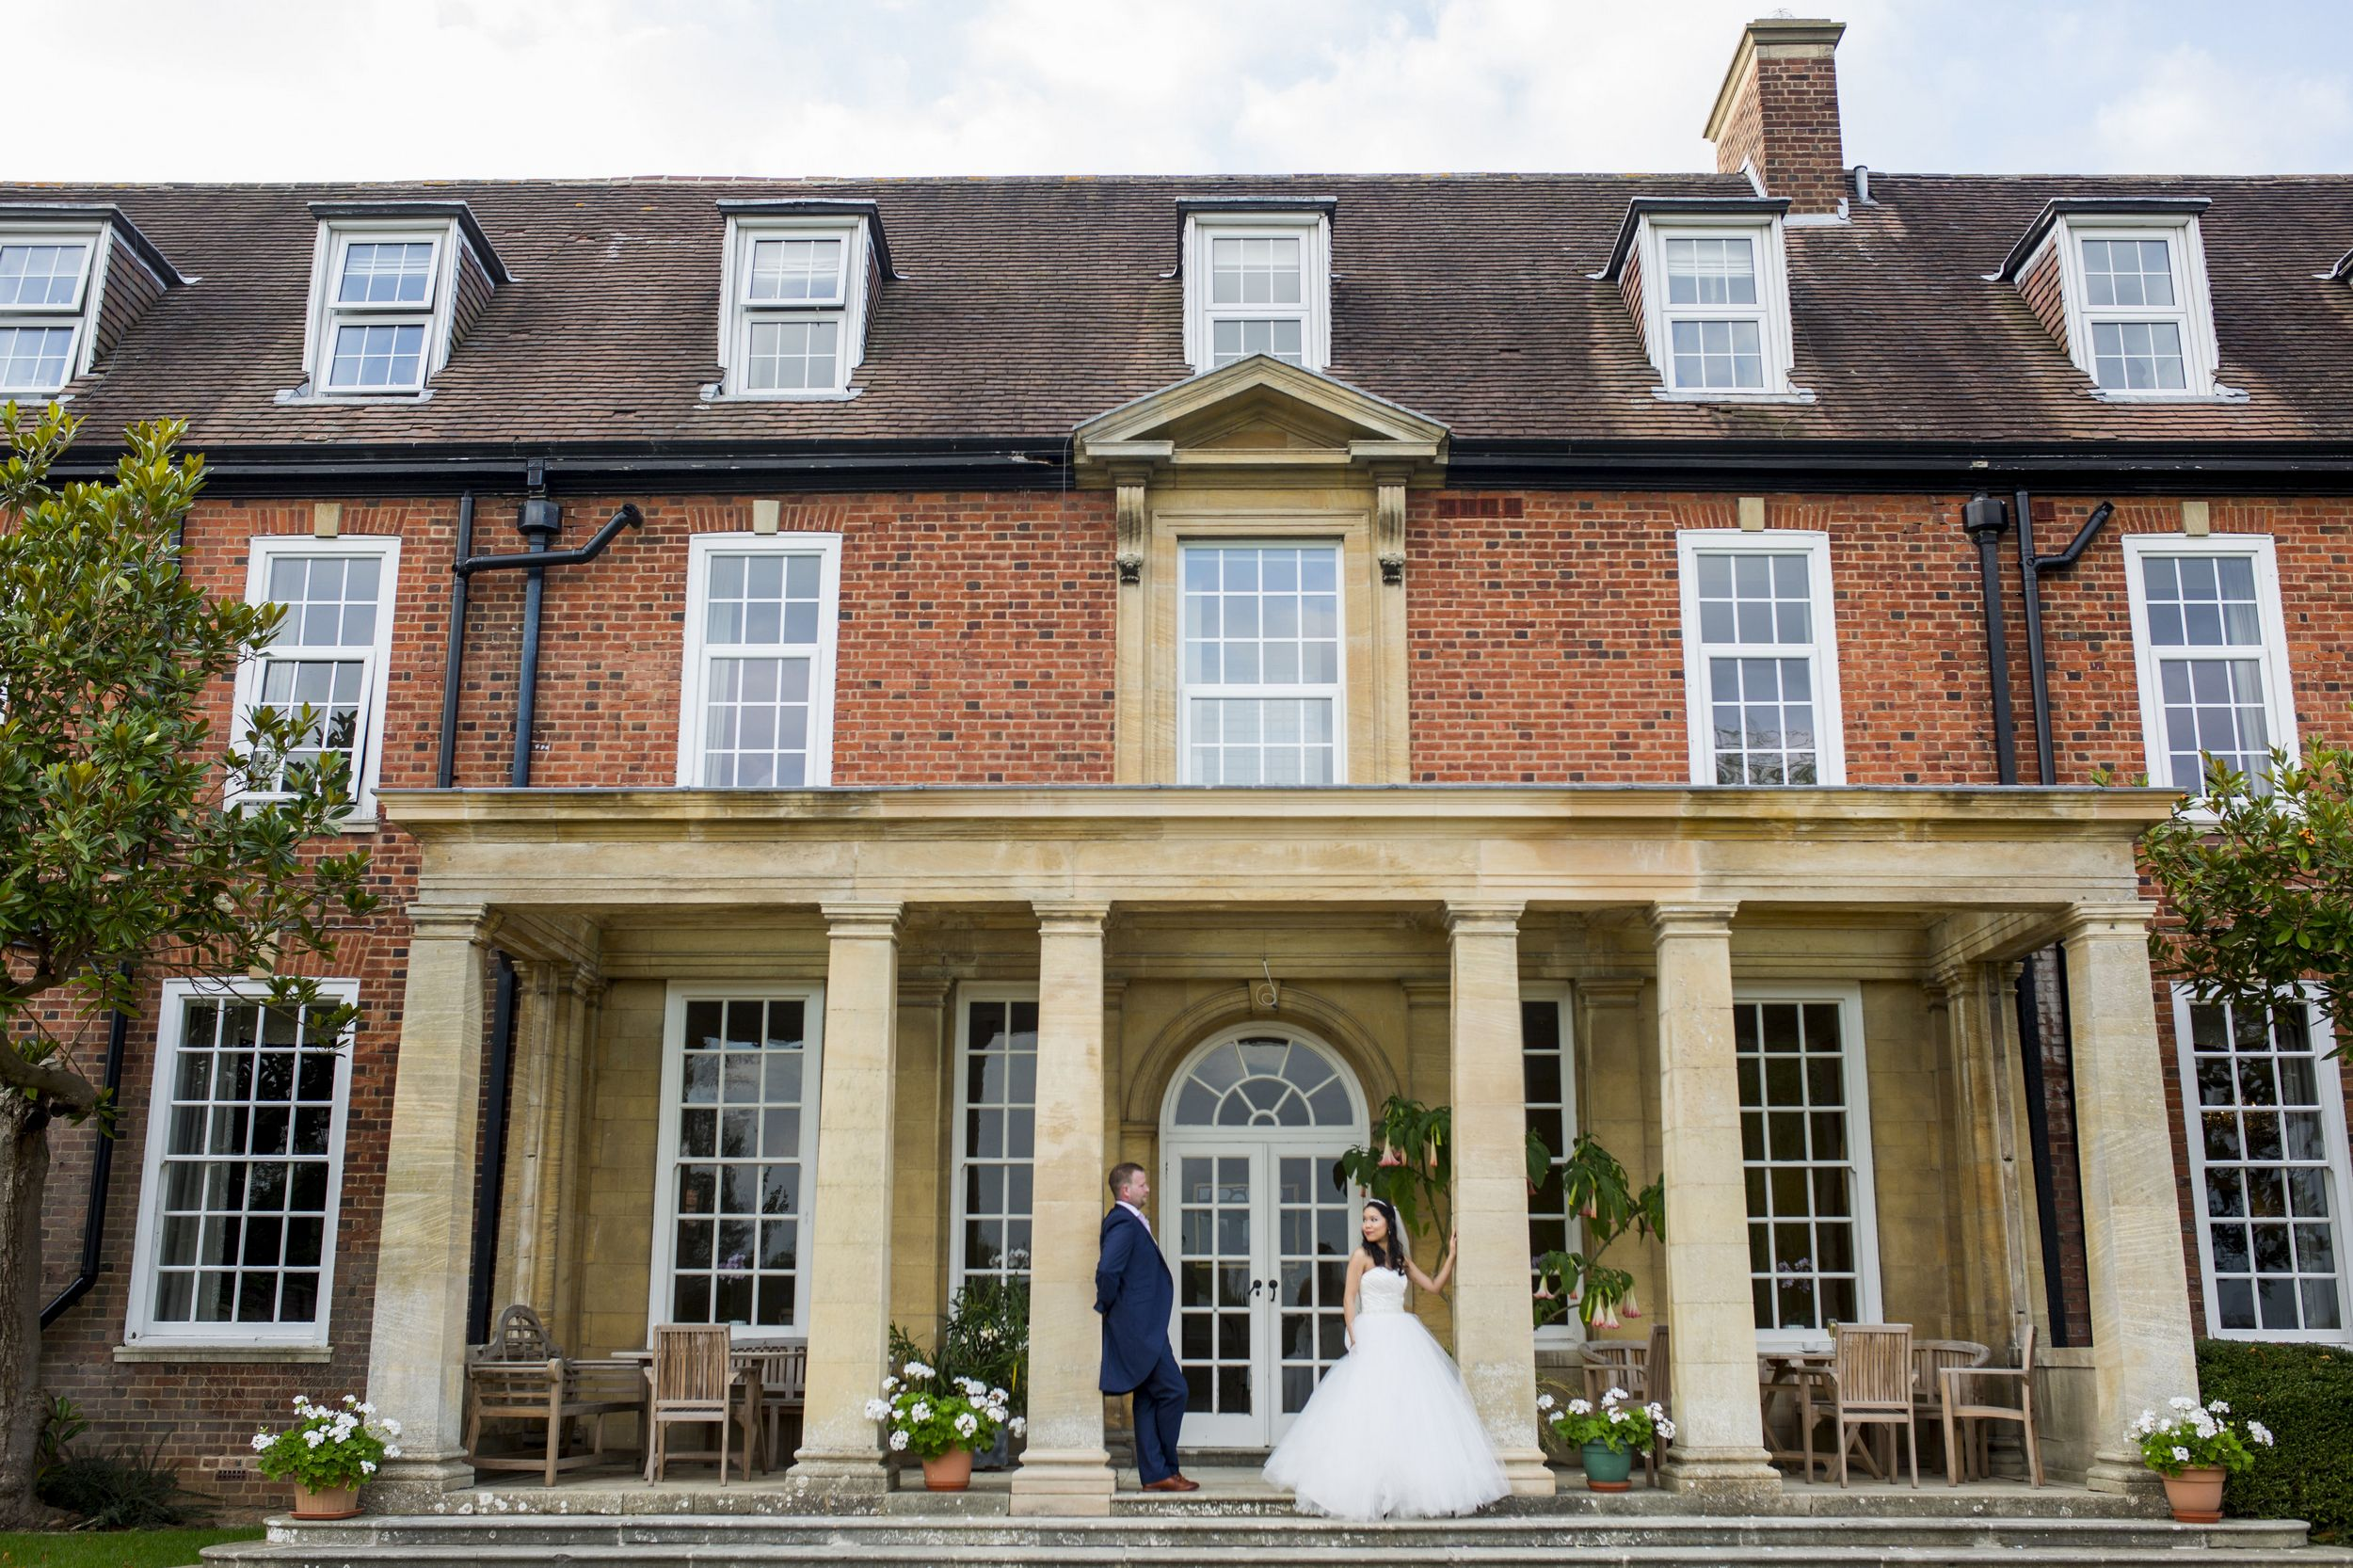 Wedding venue near Rugby